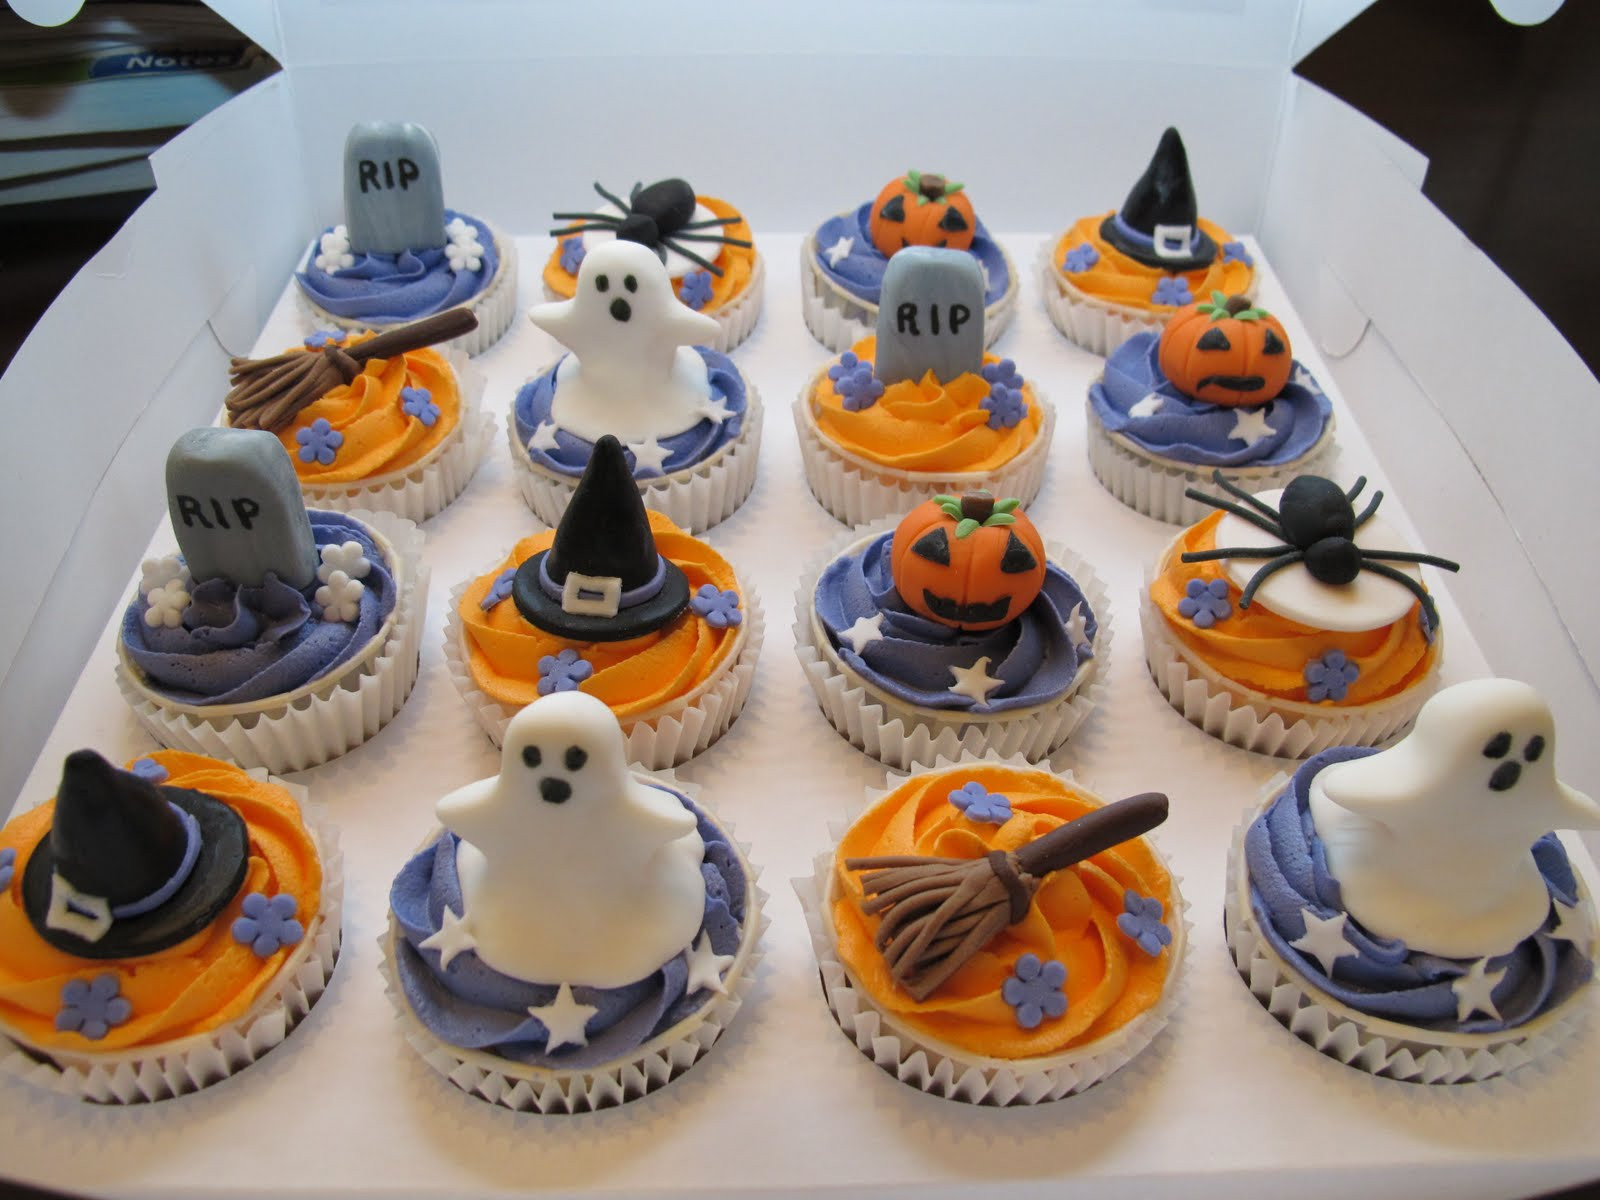 Halloween Decorating Cupcakes  Pink Oven Cakes and Cookies Halloween cupcake ideas